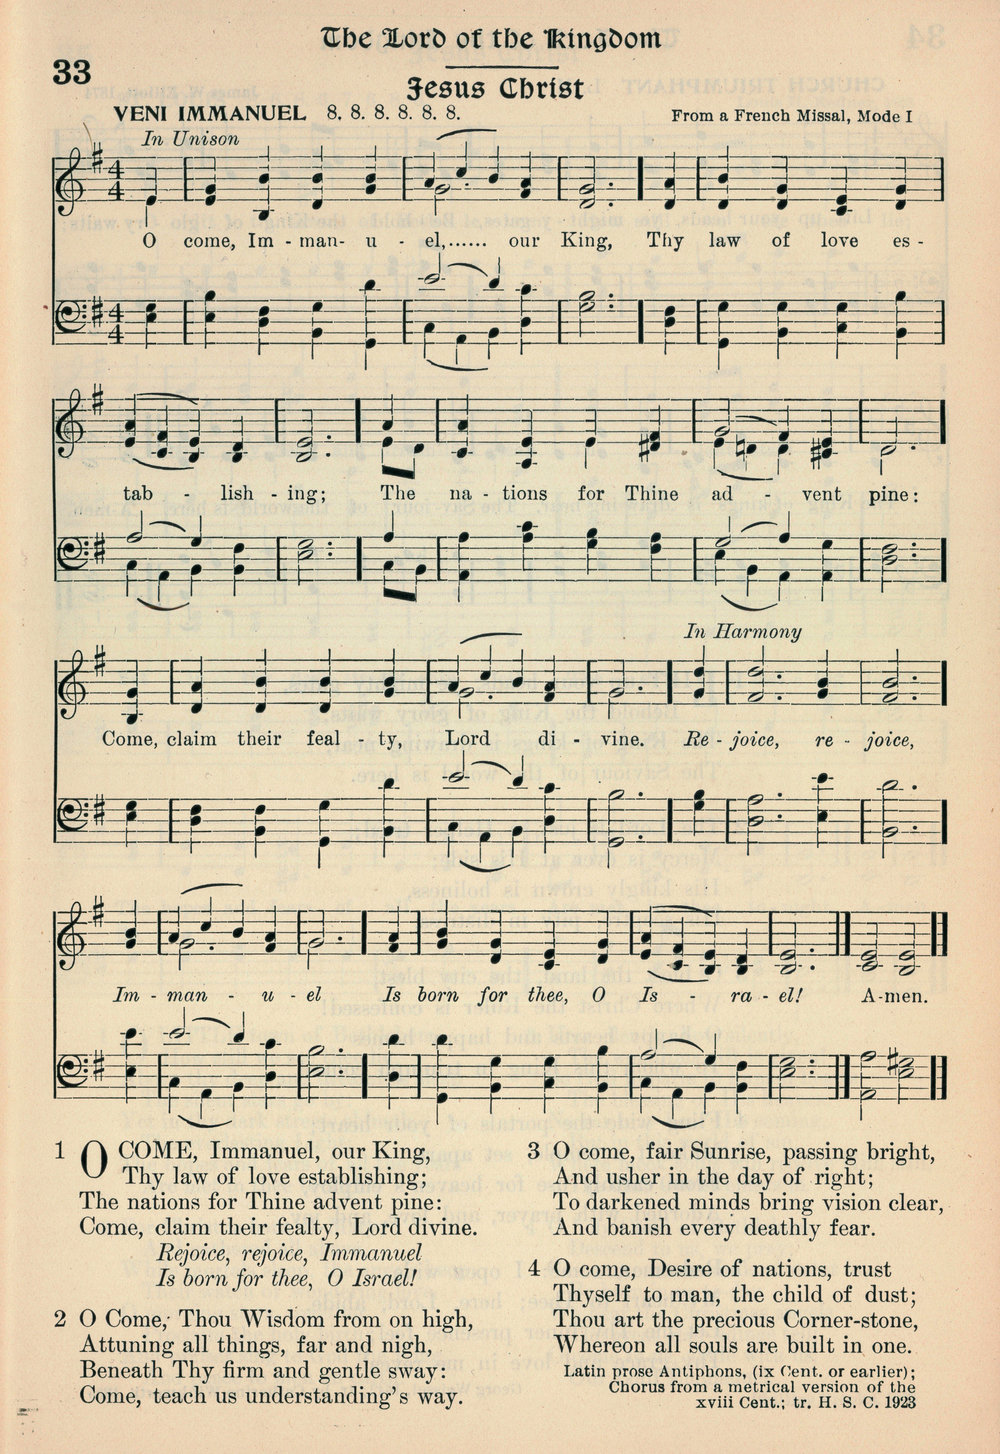 Fig. 13.   Hymns of the Kingdom of God  (New York: A.S. Barnes & Co., 1923).